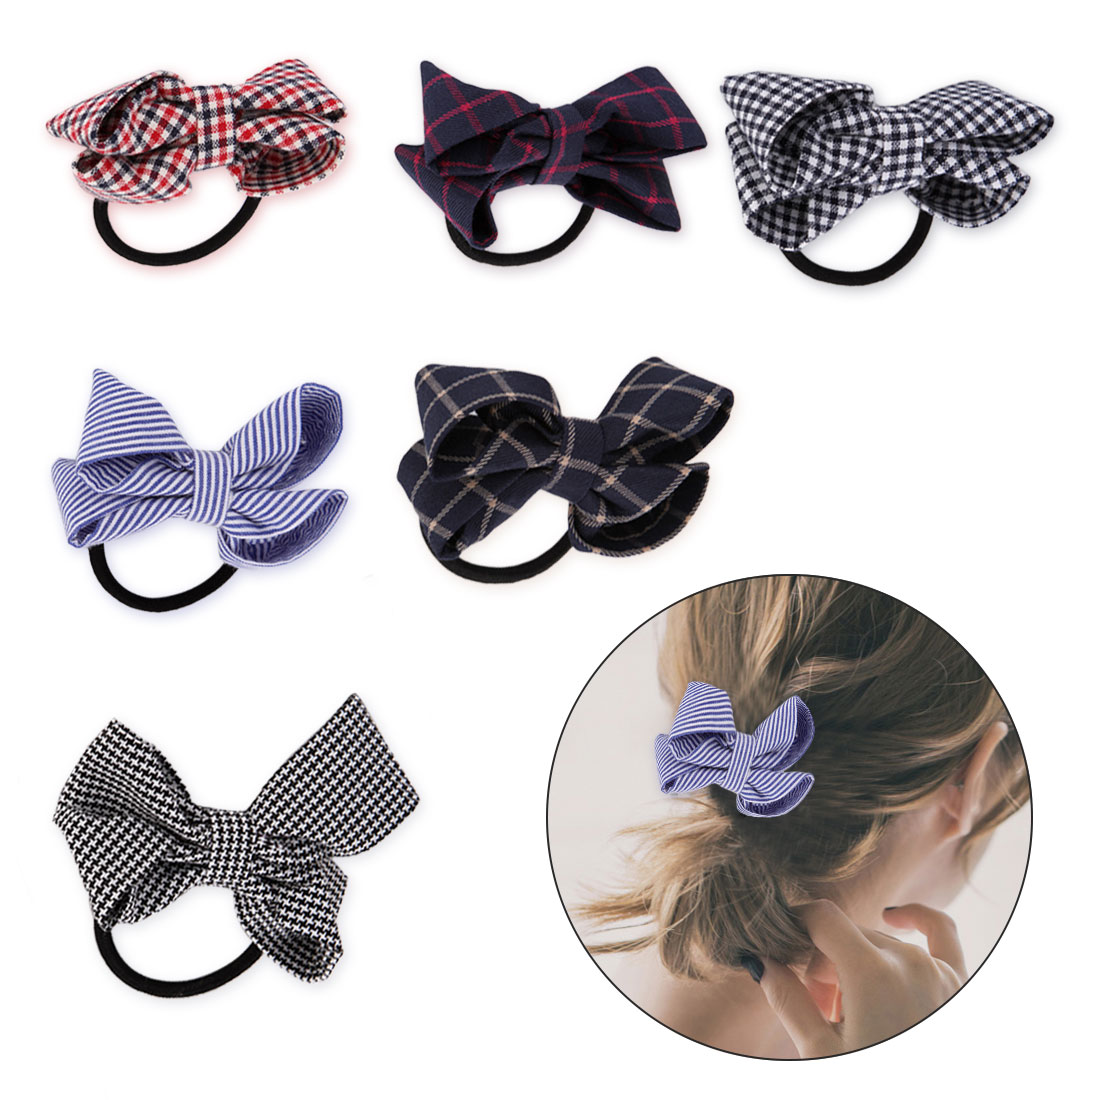 Objective 1pc Elastic Hair Bands Bands Women Hair Accessories Long Ribbon Rubber Rope Scrunchy Bow Hair Apparel Accessories